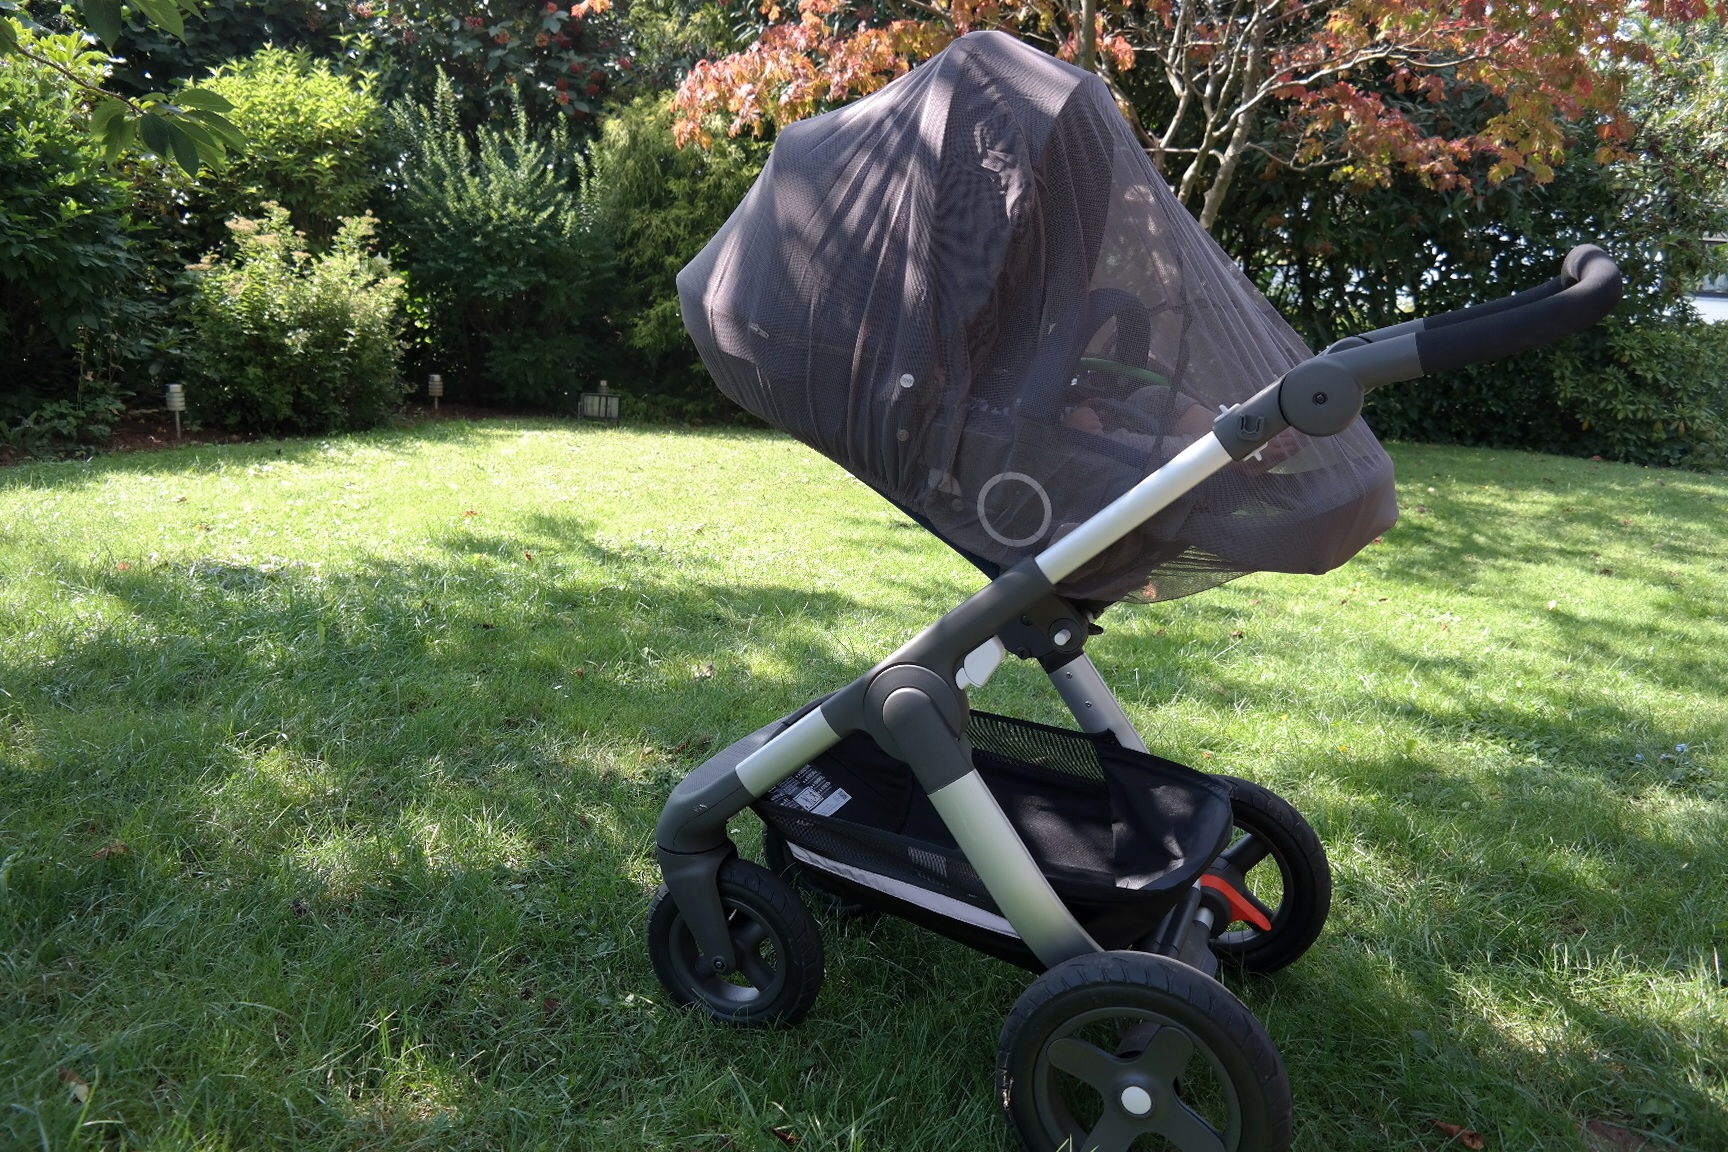 stokkeonthego stokke trailz kinderwagen test empfehlung wald drau en mamablog bonn. Black Bedroom Furniture Sets. Home Design Ideas